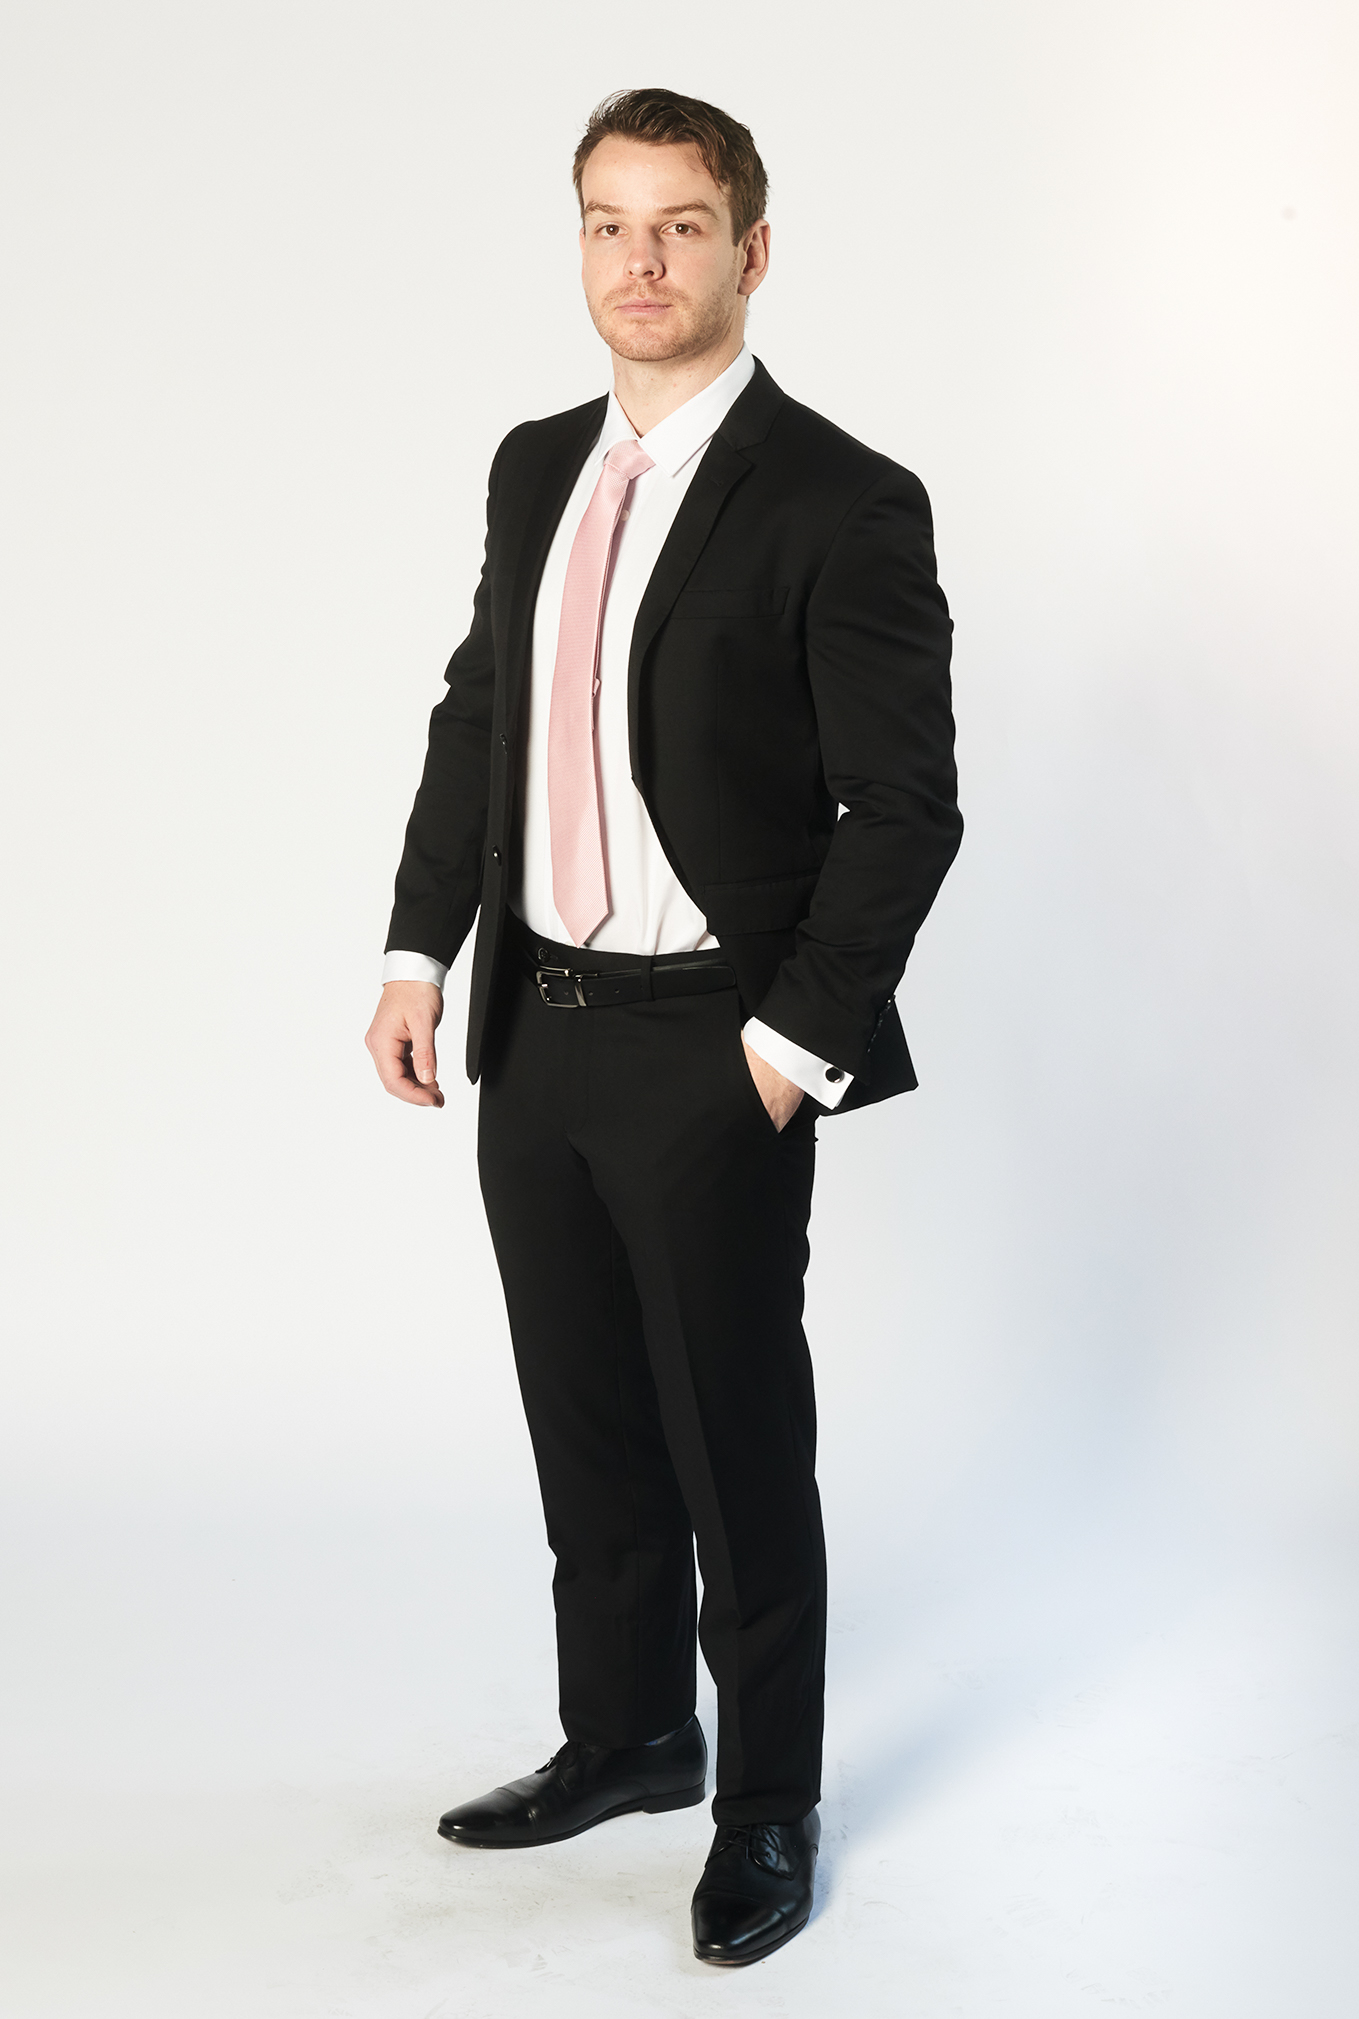 The Cambridge black suit with pink tie